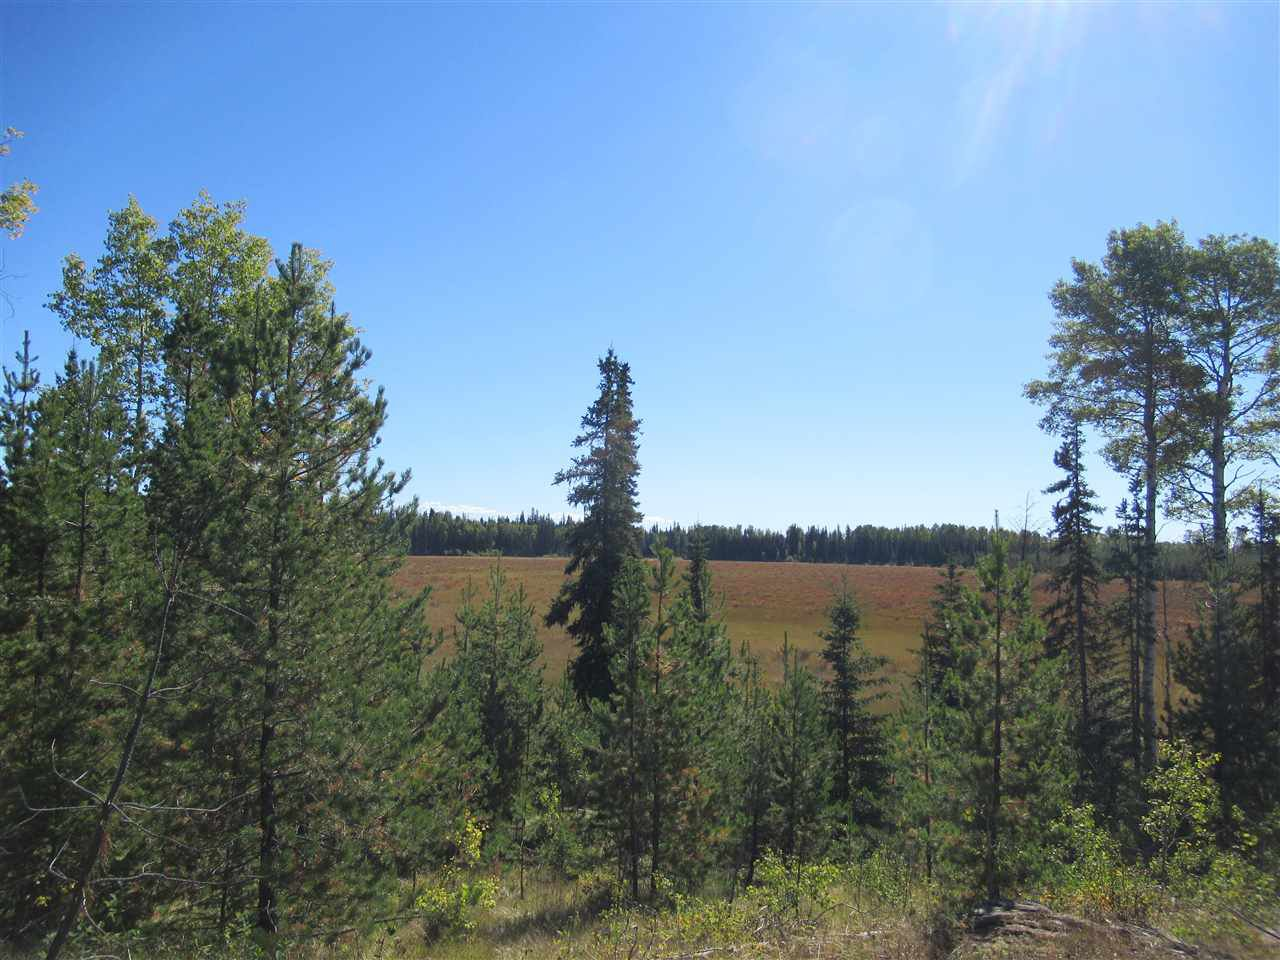 Photo 8: Photos: DL 6426 TONKA Road: 150 Mile House Land for sale (Williams Lake (Zone 27))  : MLS®# R2497364